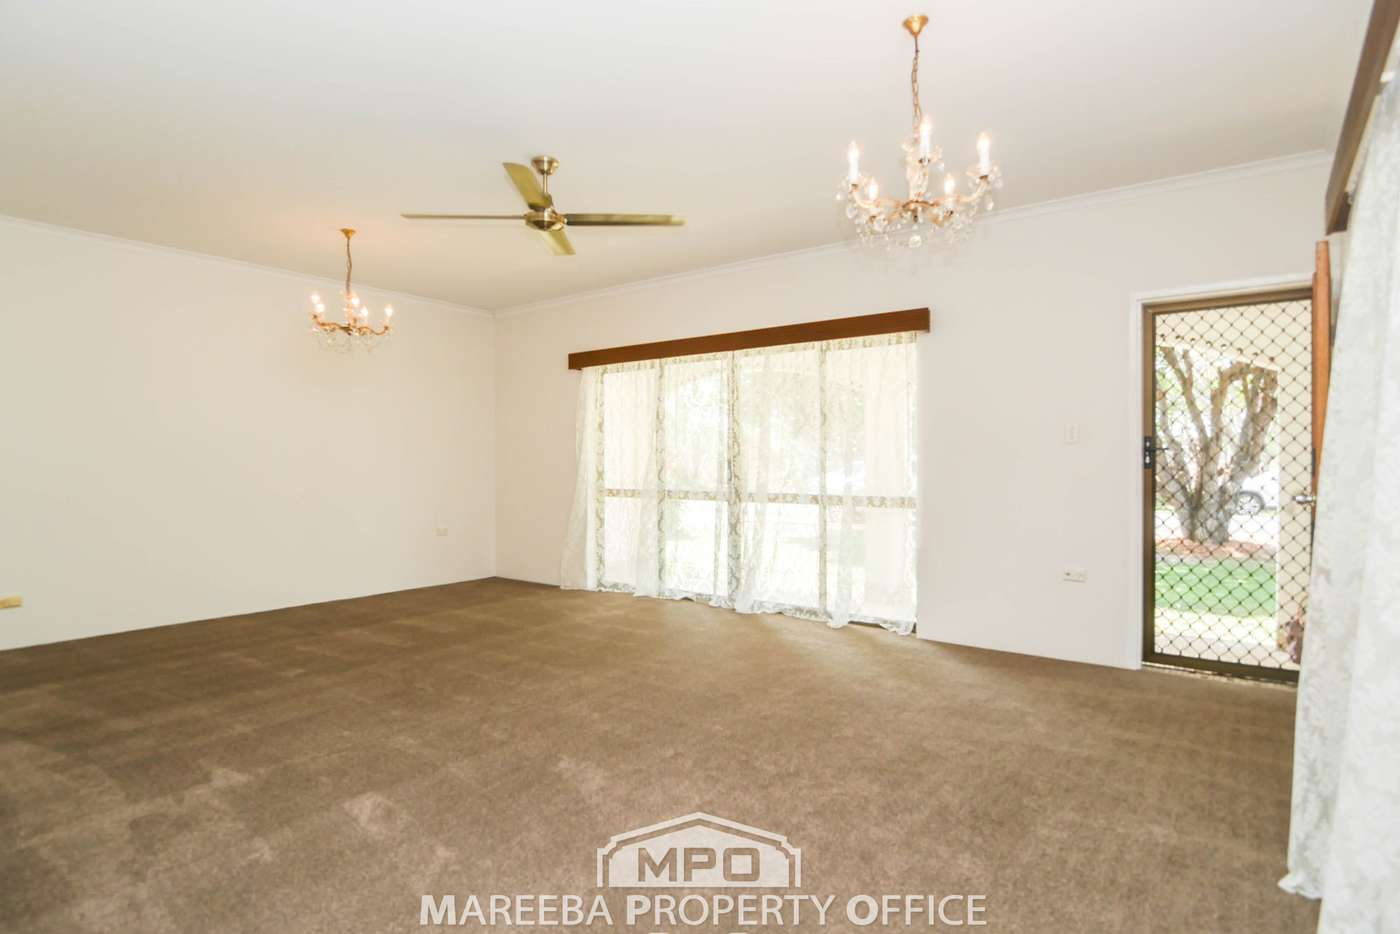 Fifth view of Homely house listing, 13 Haren Street, Mareeba QLD 4880